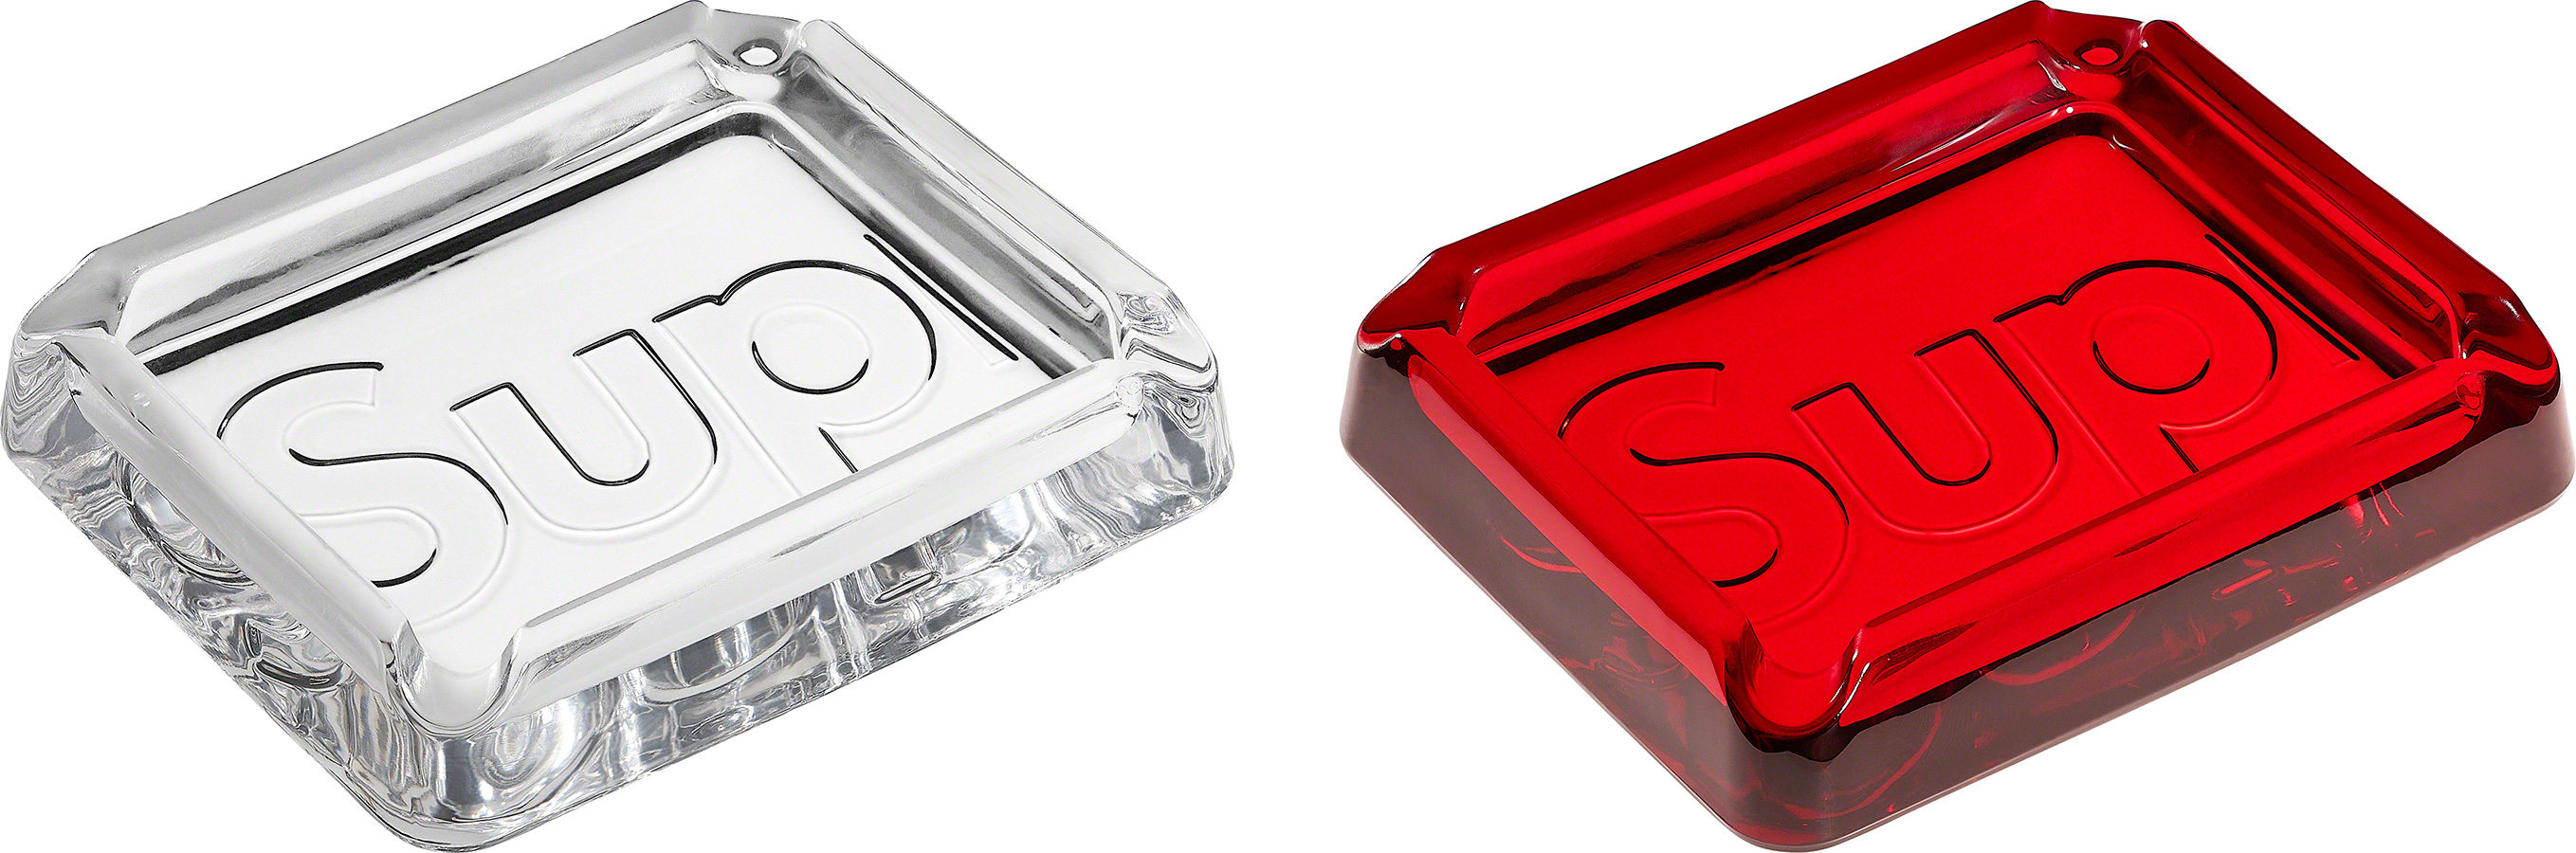 Supreme 20SS Debossed Glass Ashtray Red NEW Plate Accessory Case IN BOX